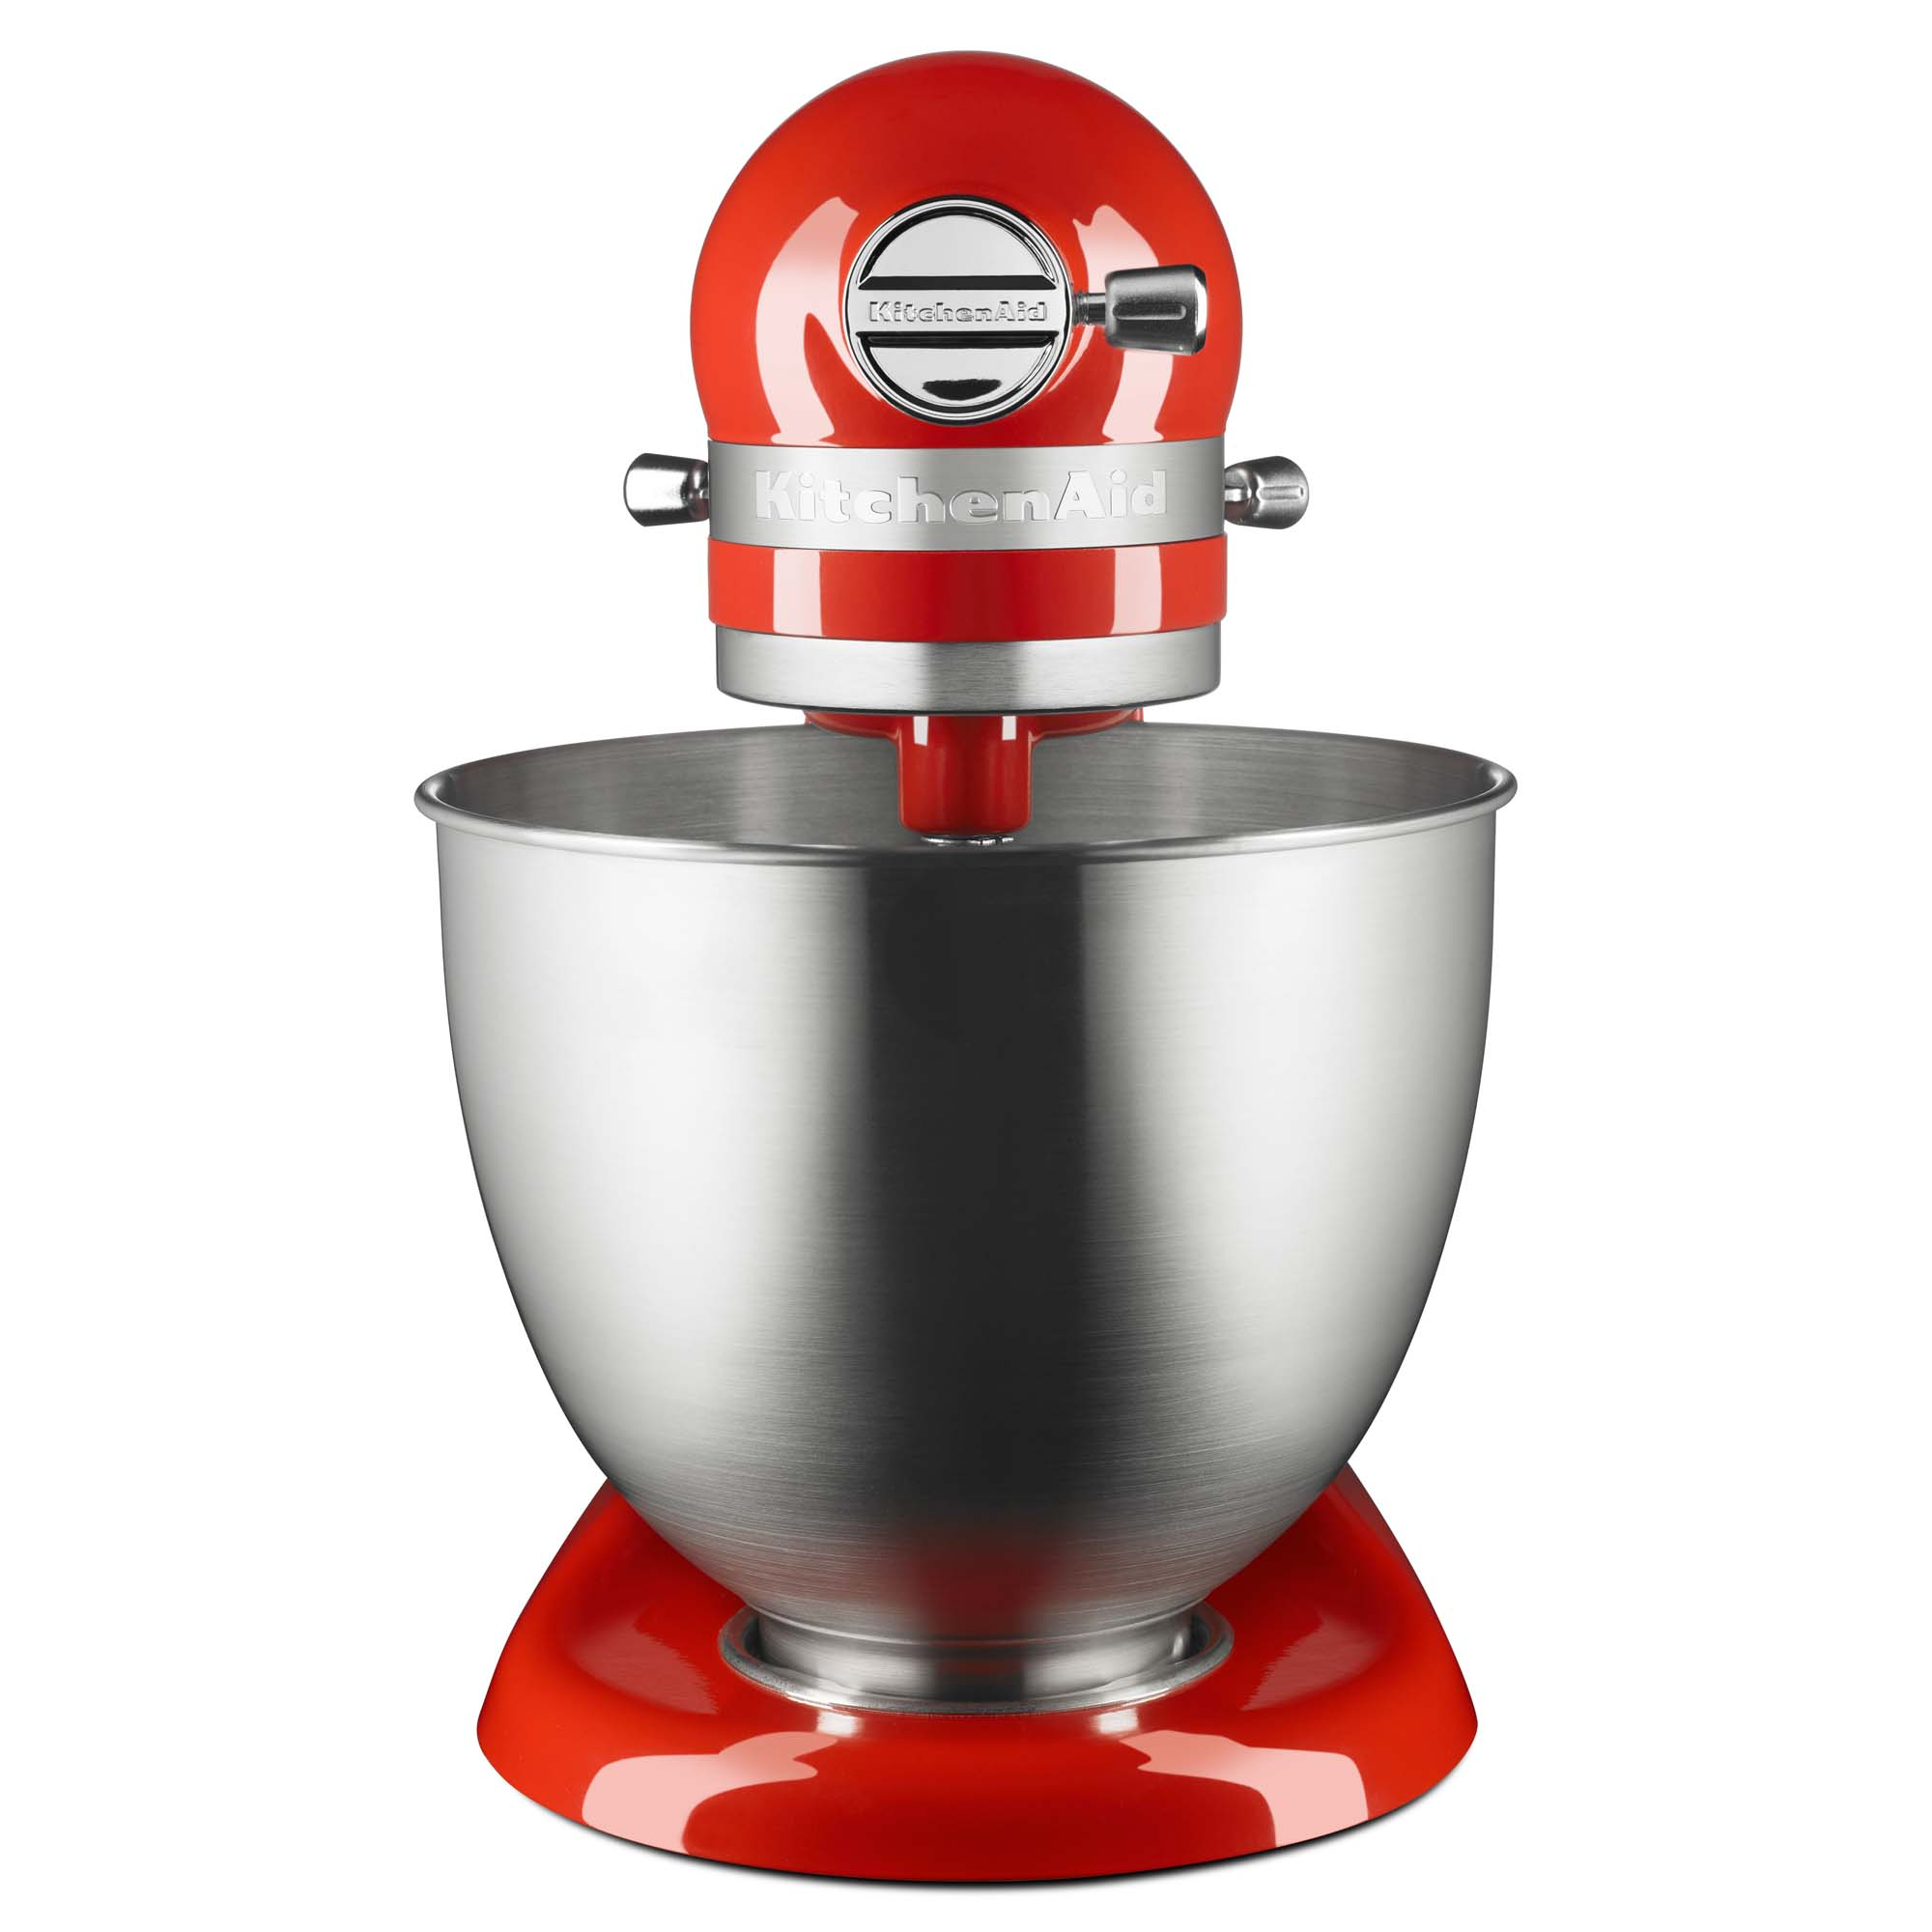 KitchenAid-Refurbished-Artisan-Mini-3-5-Quart-Tilt-Head-Stand-Mixer-RKSM33XX thumbnail 20